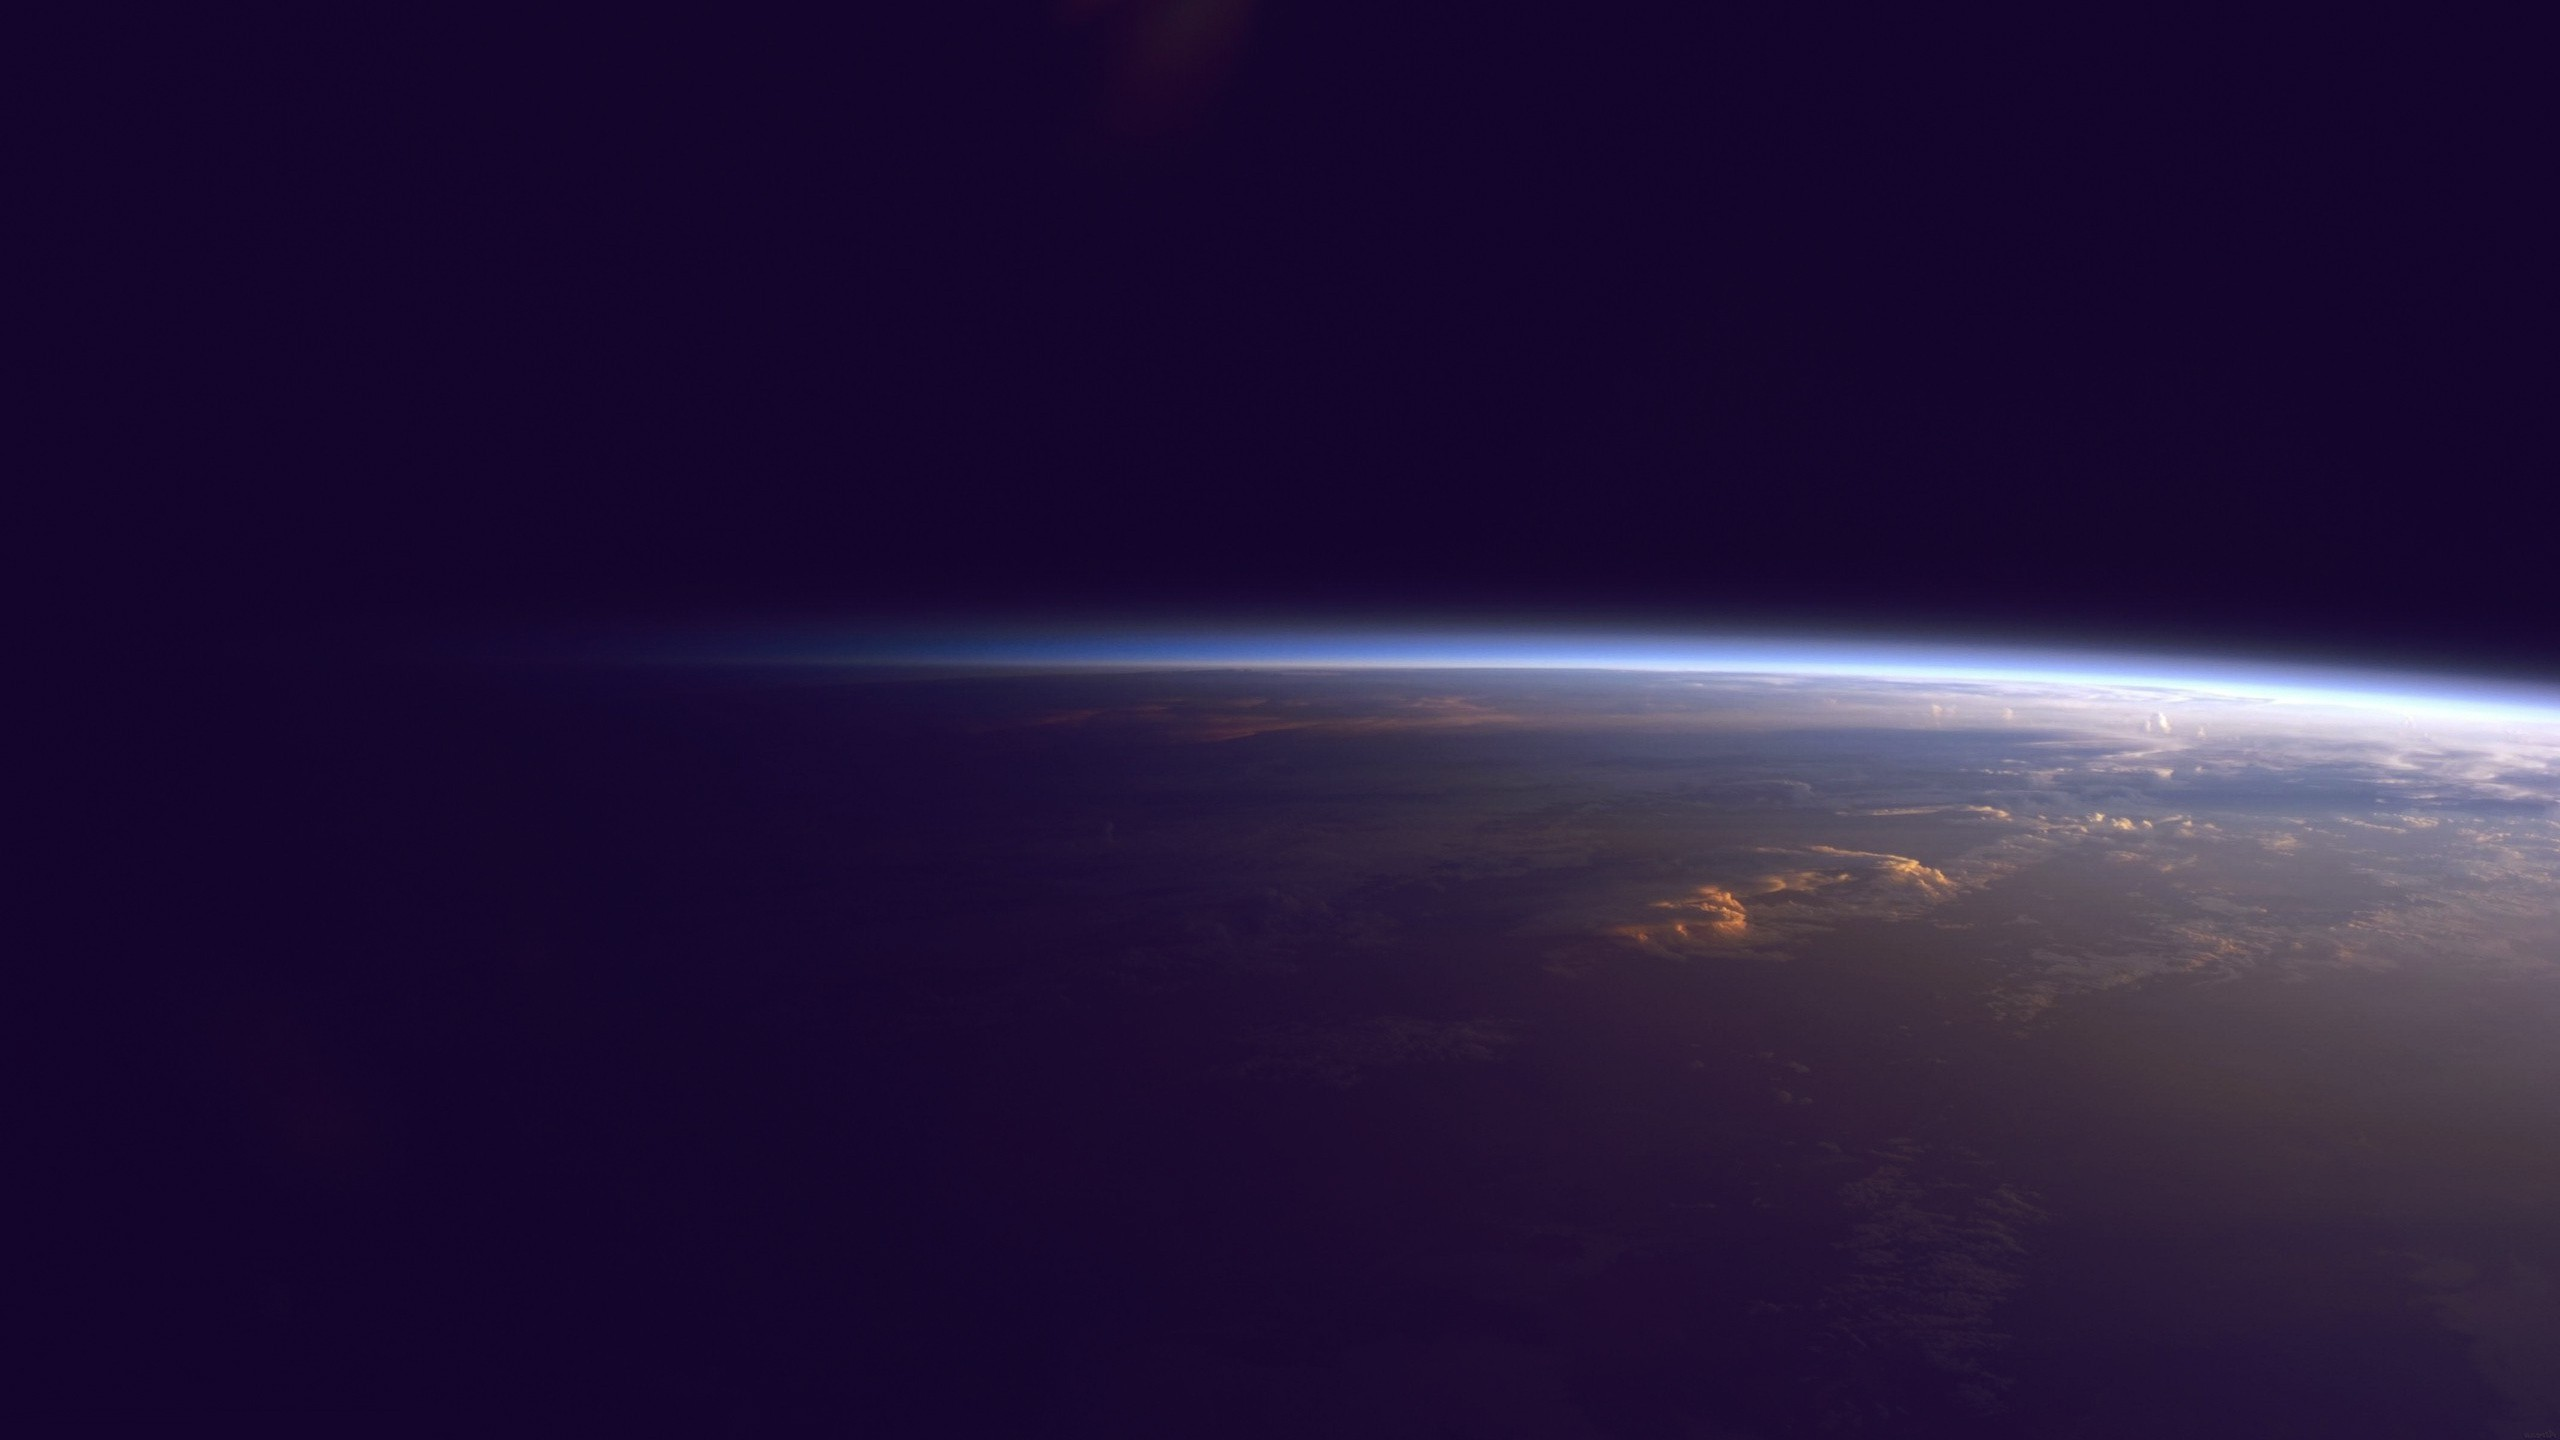 Daily Wallpaper: Earth at Night | I Like To Waste My Time